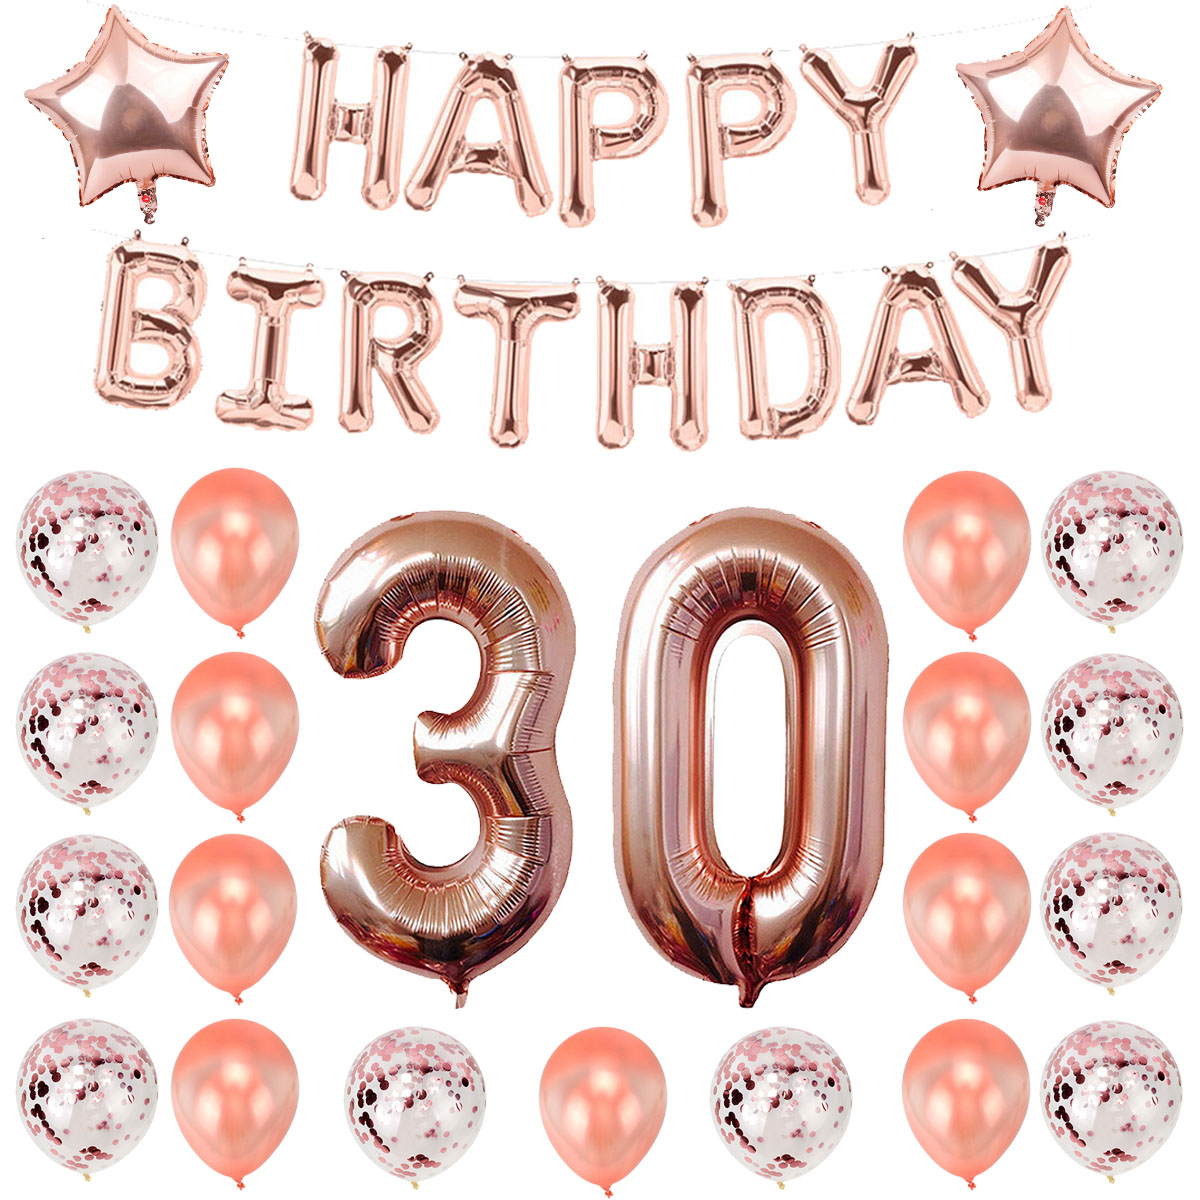 30th 40th 50th 60th Birthday Rose Gold Balloons Happy Birthday Party Decorations Adult Men Woman 30 40 50 60 Years Birthday